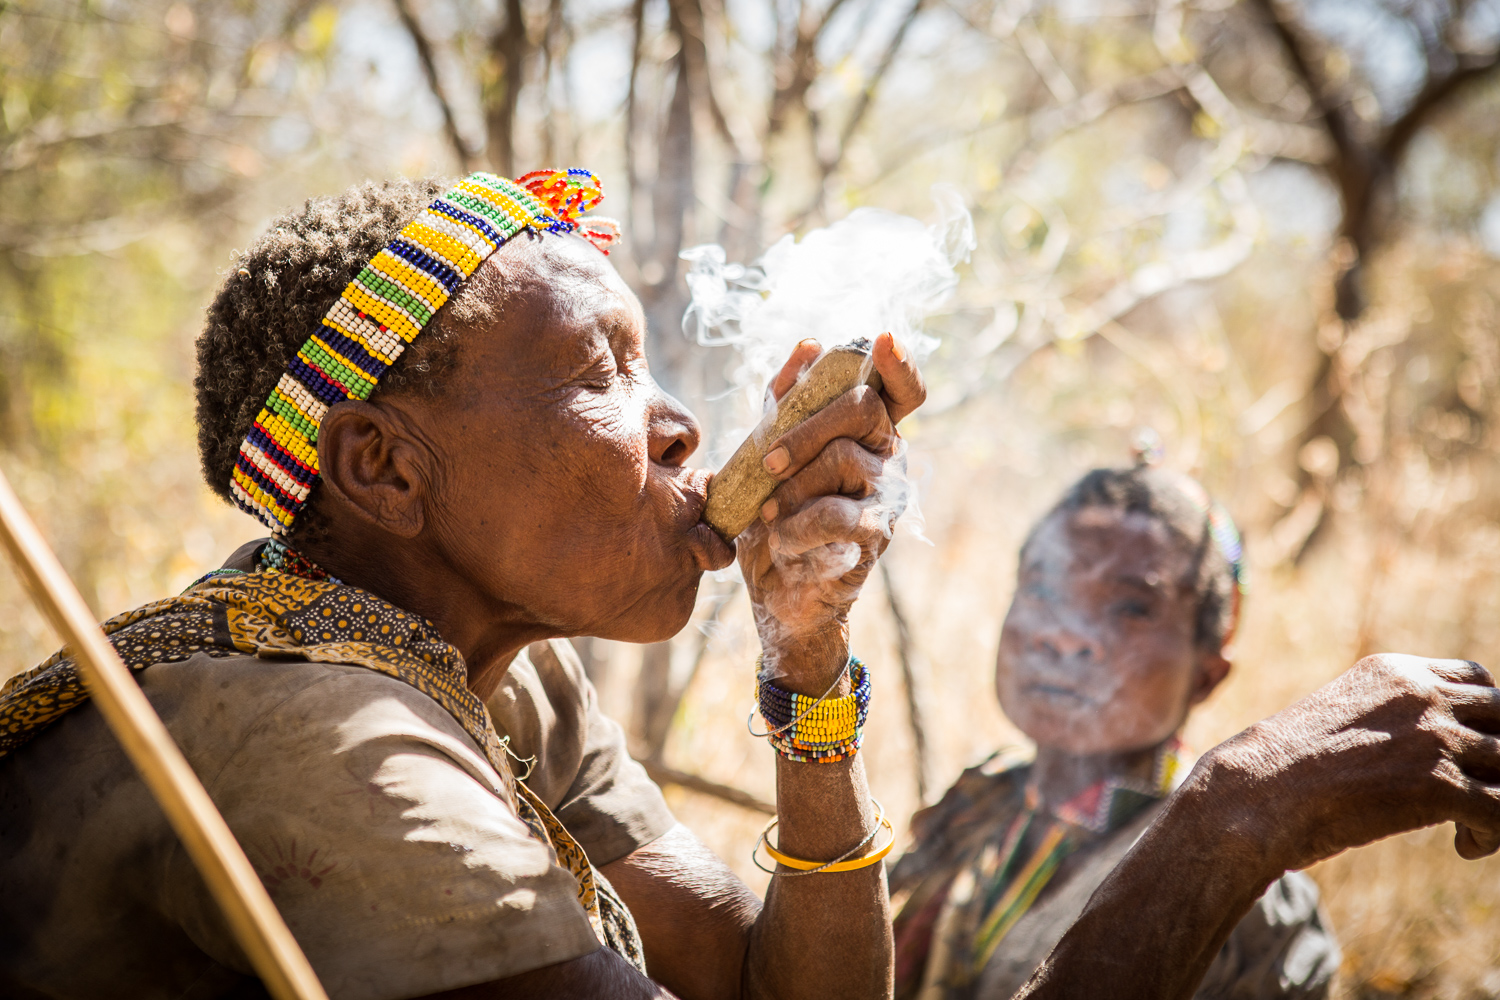 hadza tribe egalitarian society hunter gatherer tanzania anthropology smoking pipe